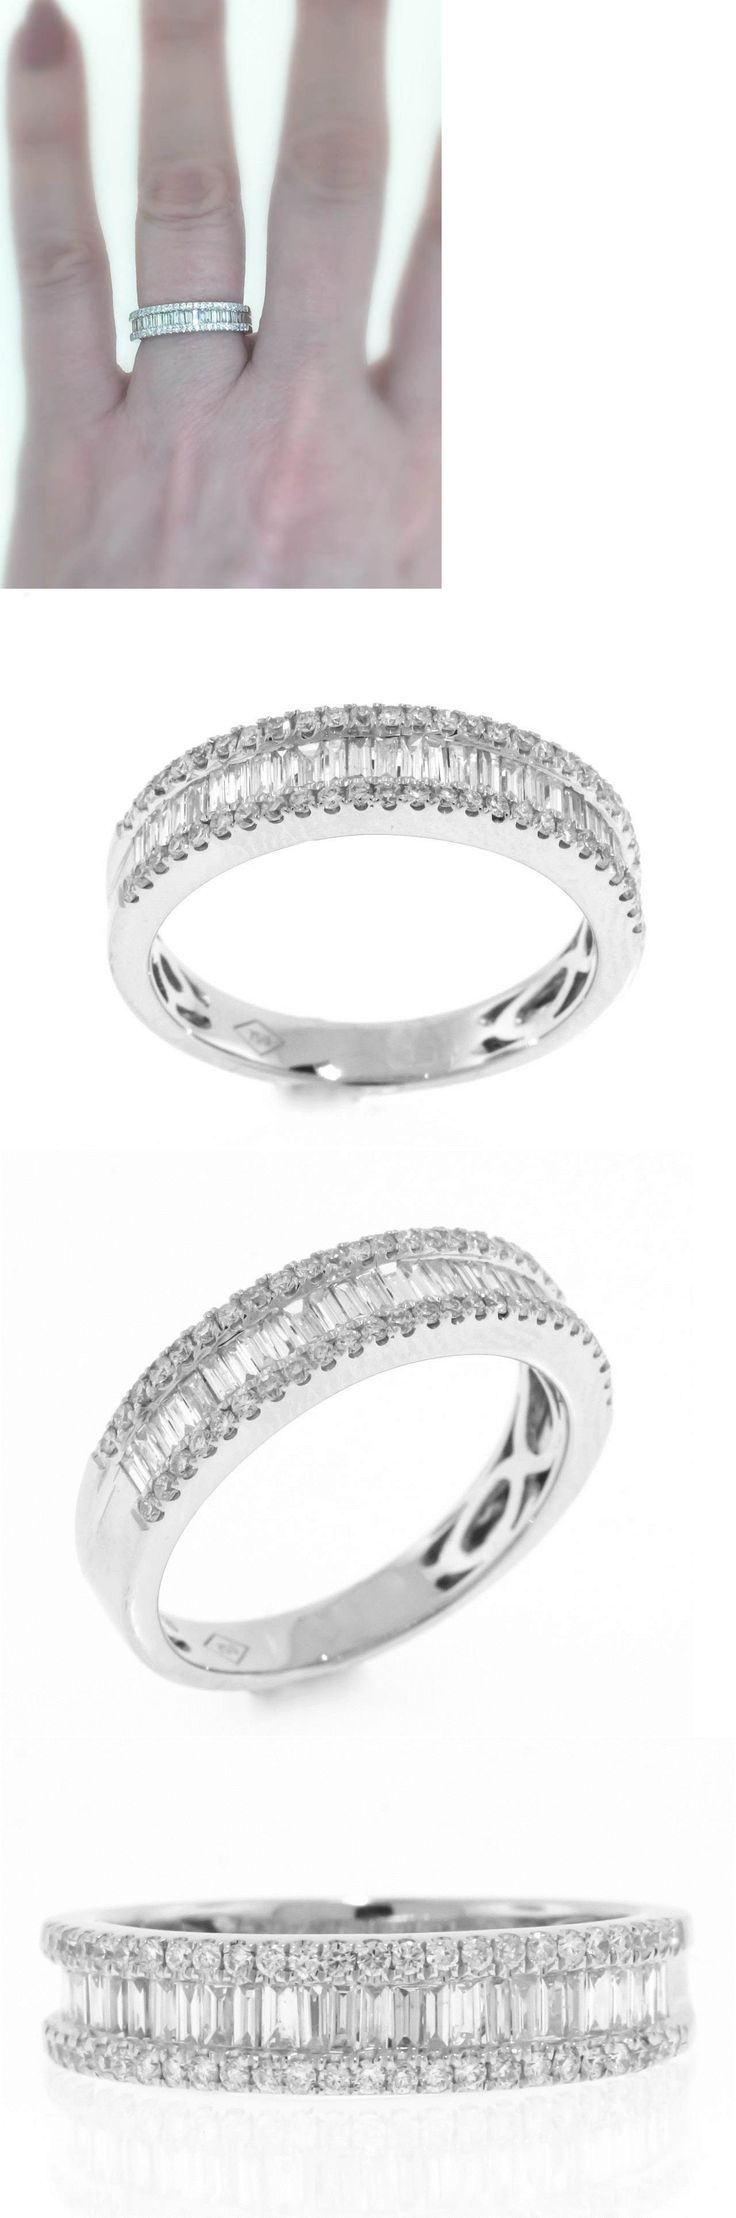 Diamonds and Gemstones 92853: Vs1 Diamond Anniversary Ring 1.00Ct Baguette 18K White Gold Band BUY IT NOW ONLY: $999.0